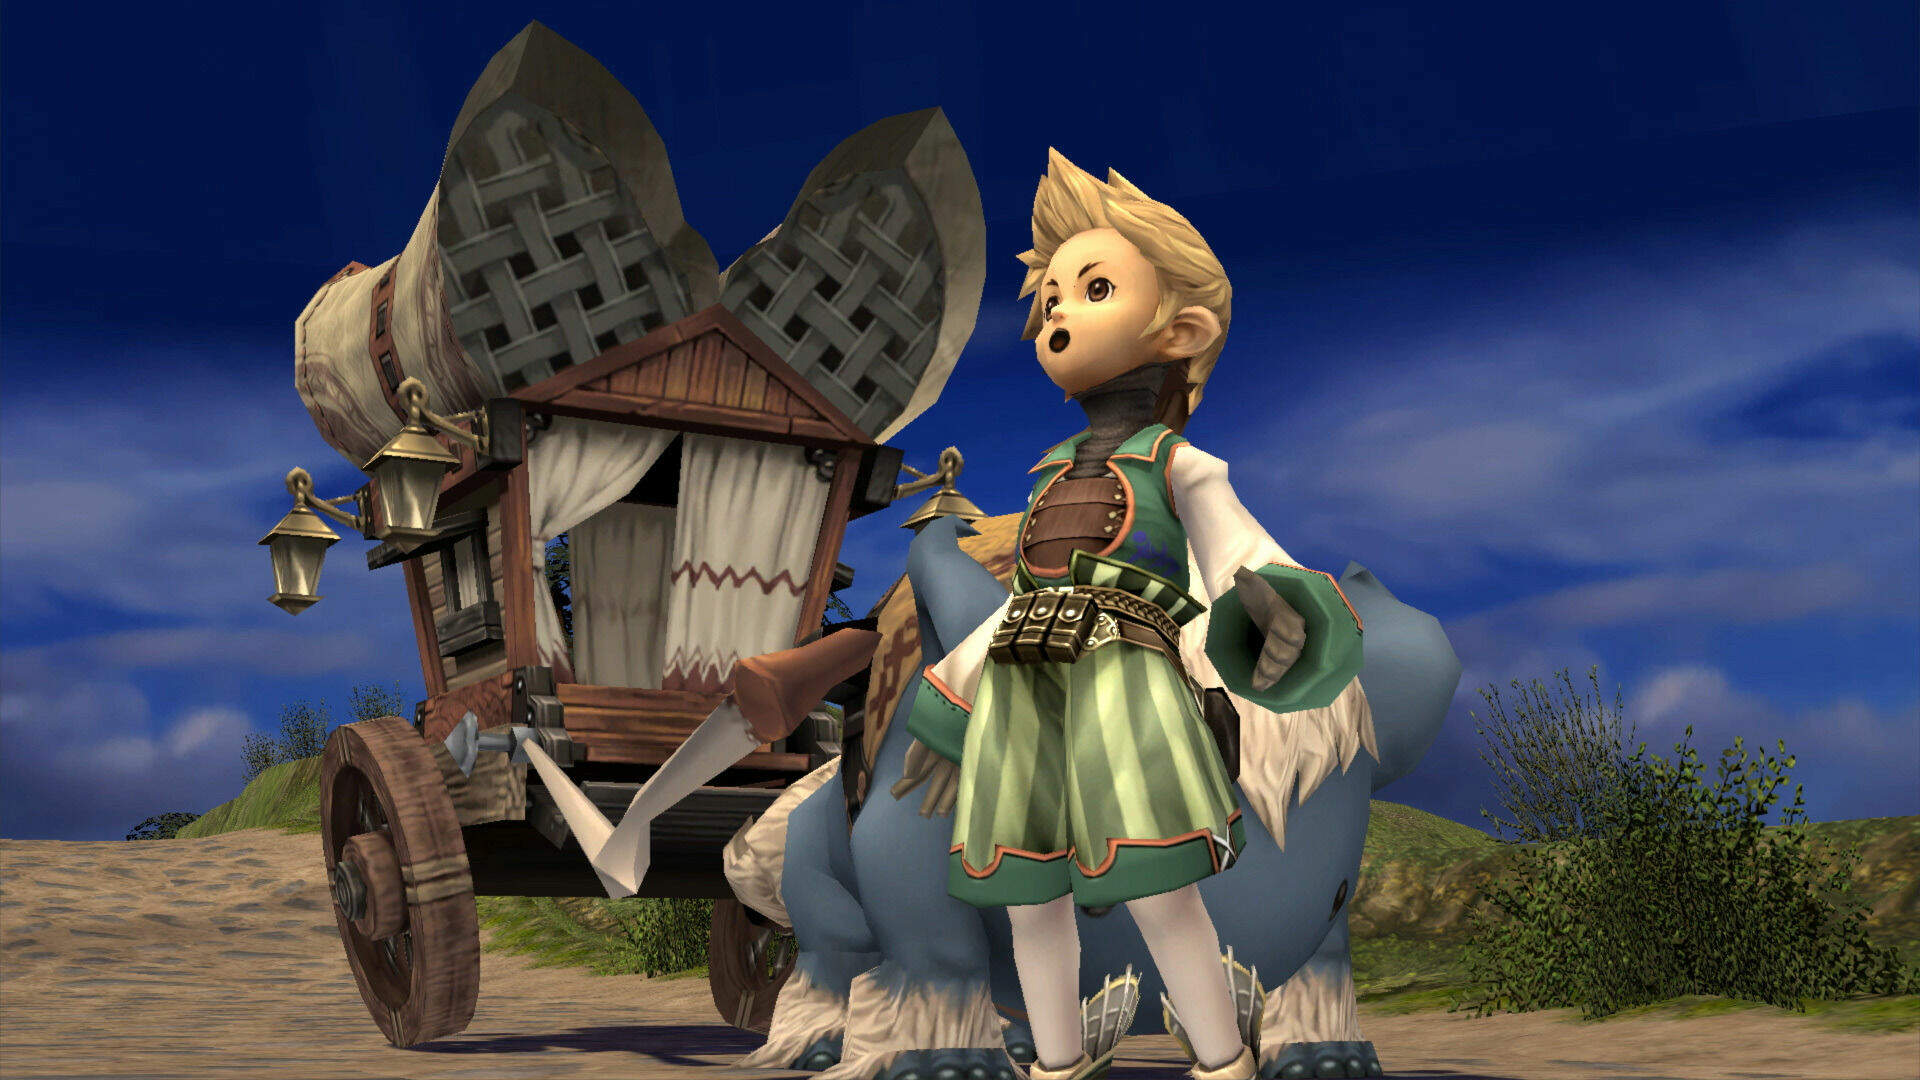 Final Fantasy Crystal Chronicles' Remaster is Hitting Early Next Year